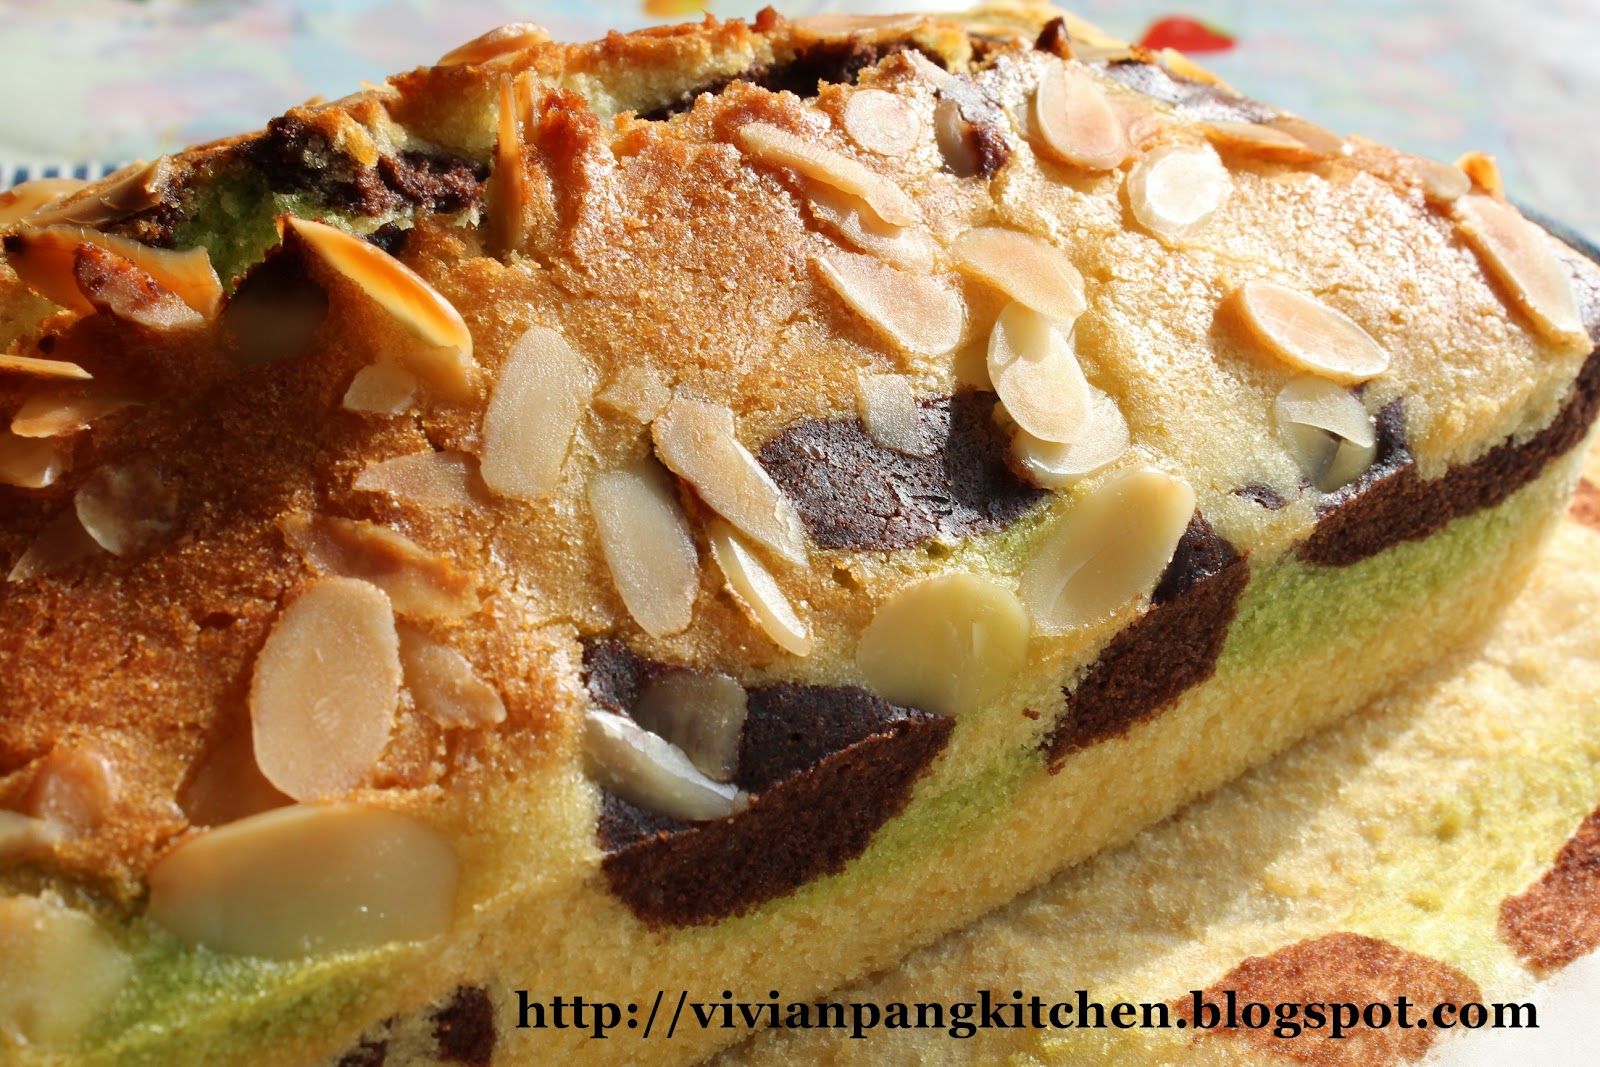 Vivian Pang Kitchen Trio Flavours And Colours Butter Cake/ Steam Bake